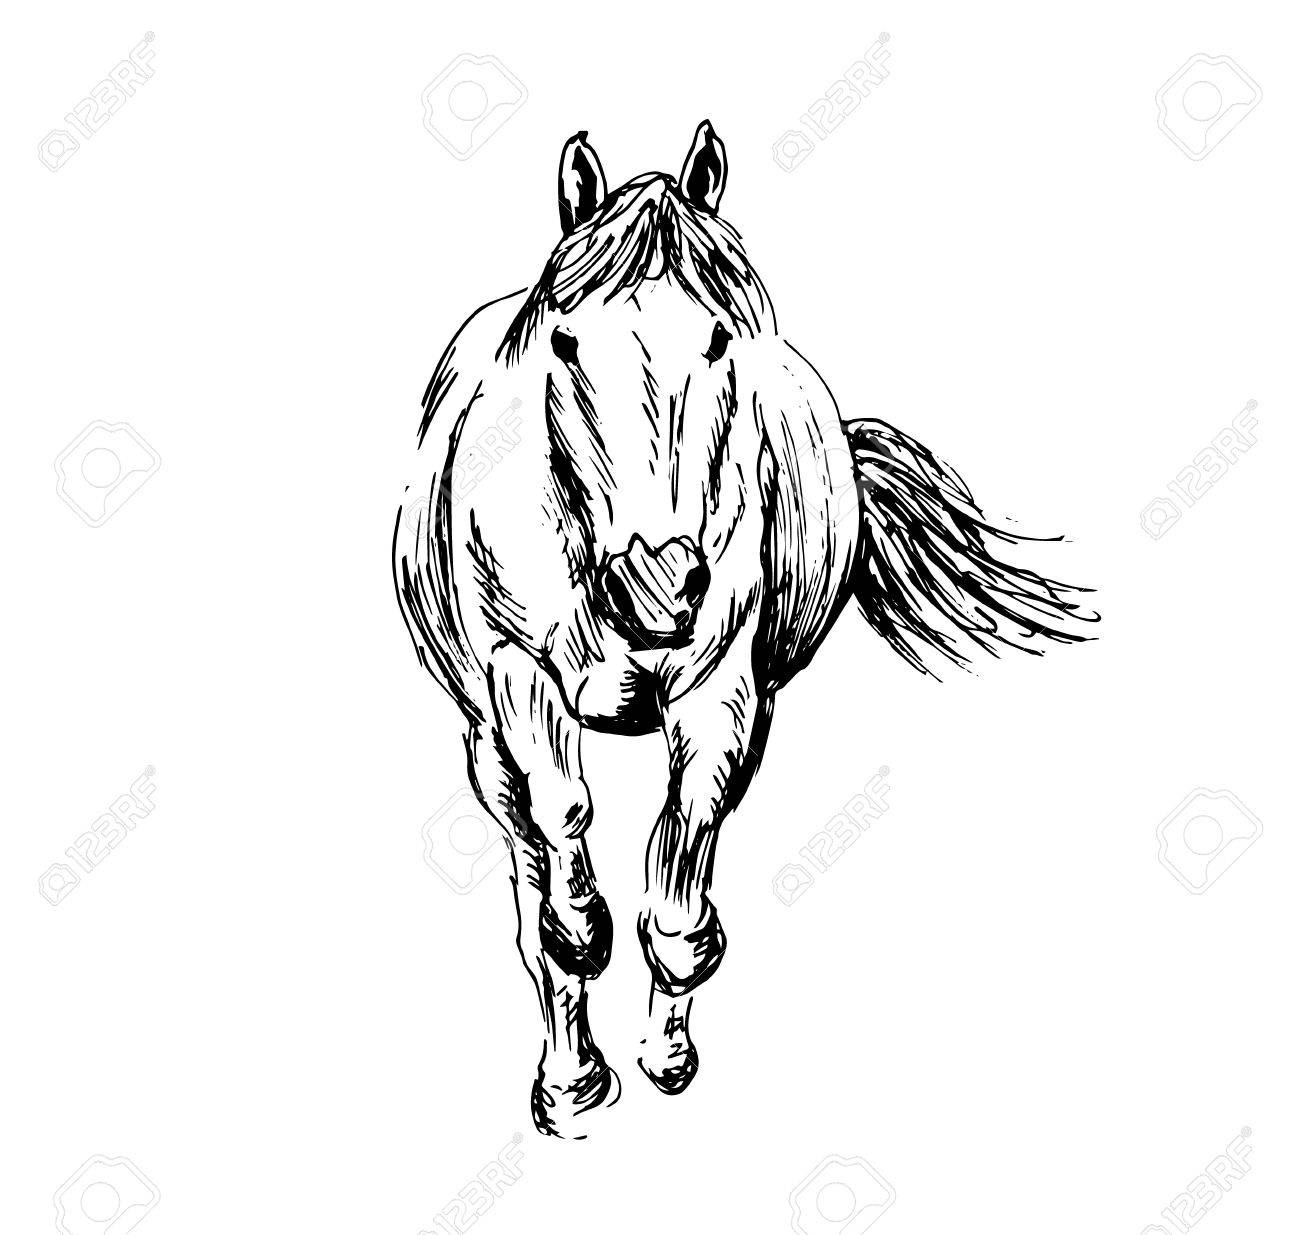 Hand Sketch Of A Running Horse Vector Illustration Royalty Free Cliparts Vectors And Stock Illustration Image 87111130